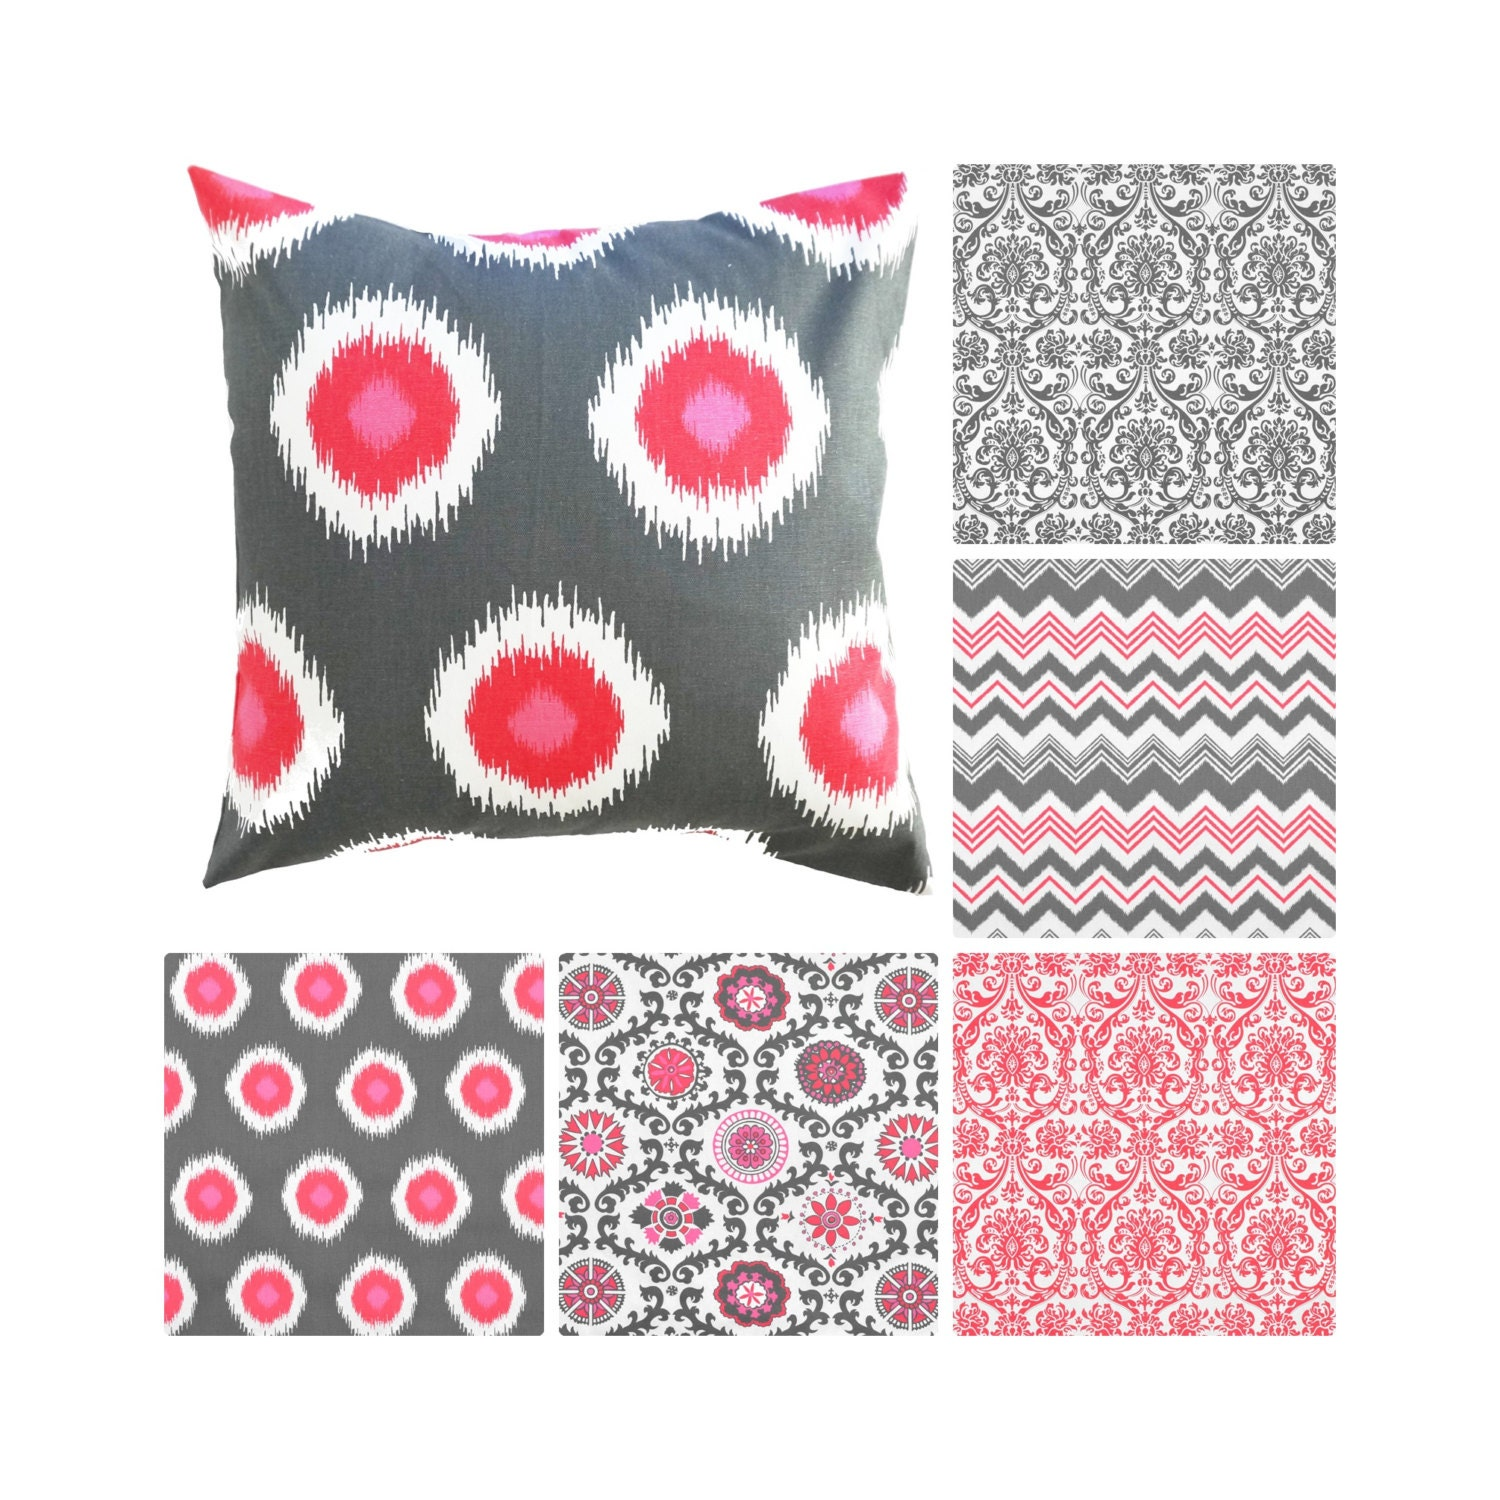 Pink And Grey Decorative Pillows : Pink Grey Decorative Pillows.Pink Pillow Covers.Red Damask